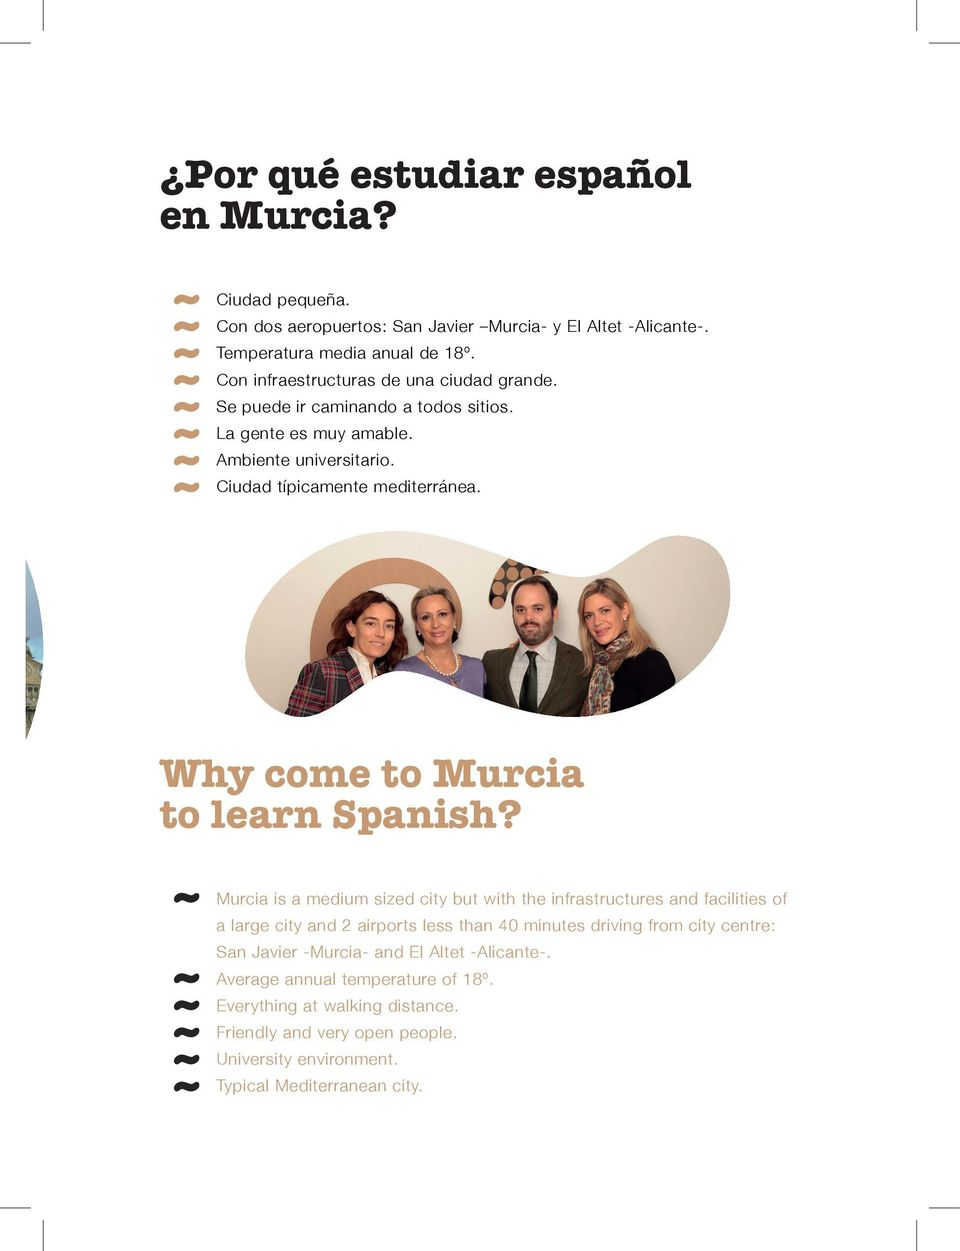 Why come to Murcia to learn Spanish?